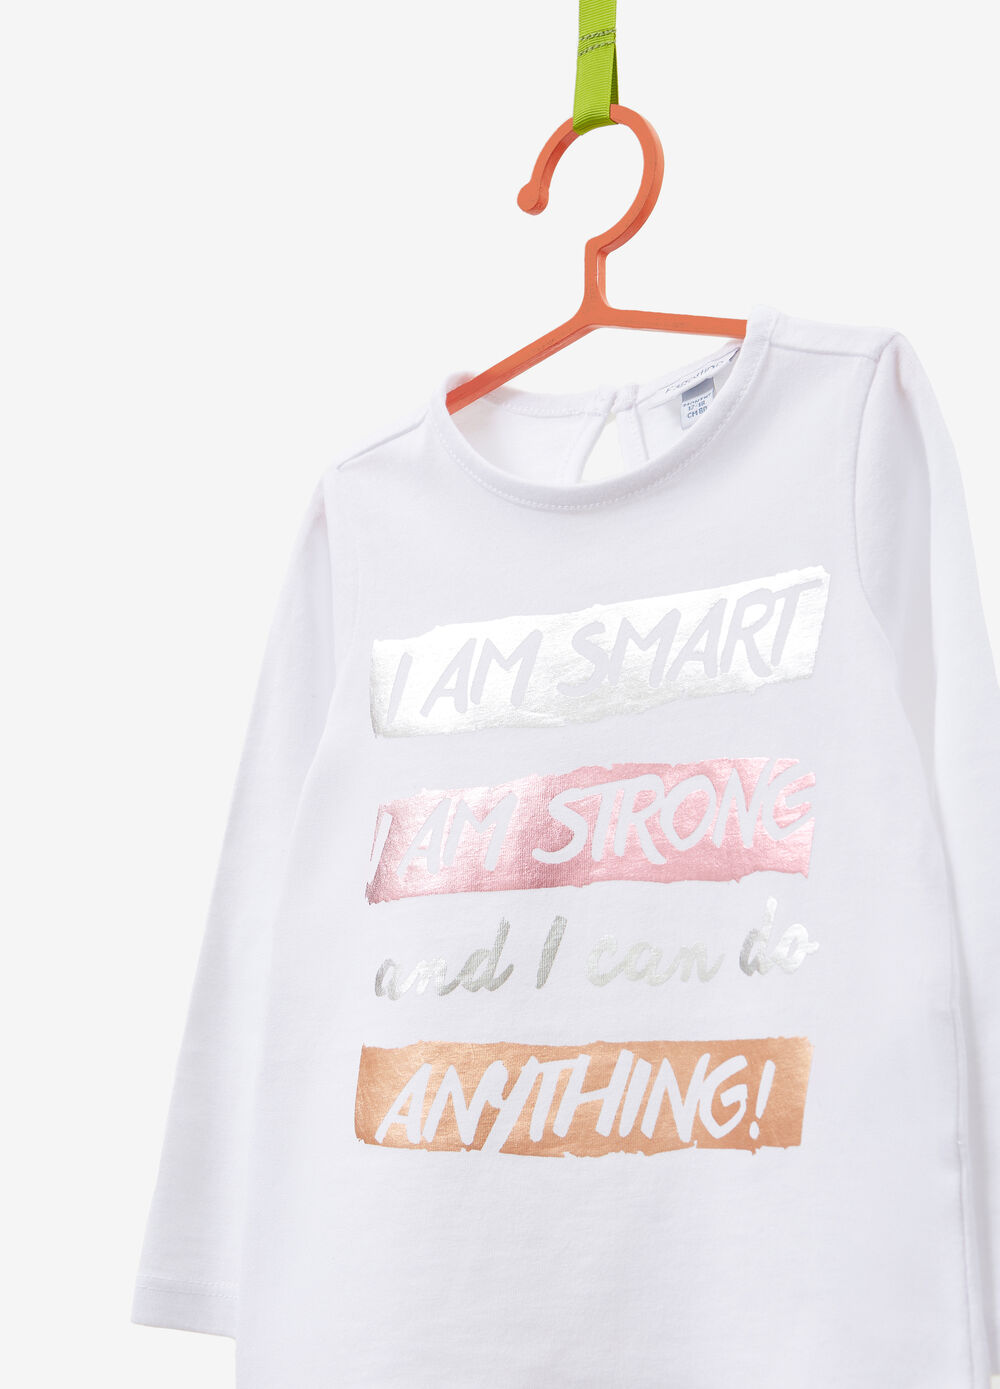 Cotton T-shirt with glitter lettering print